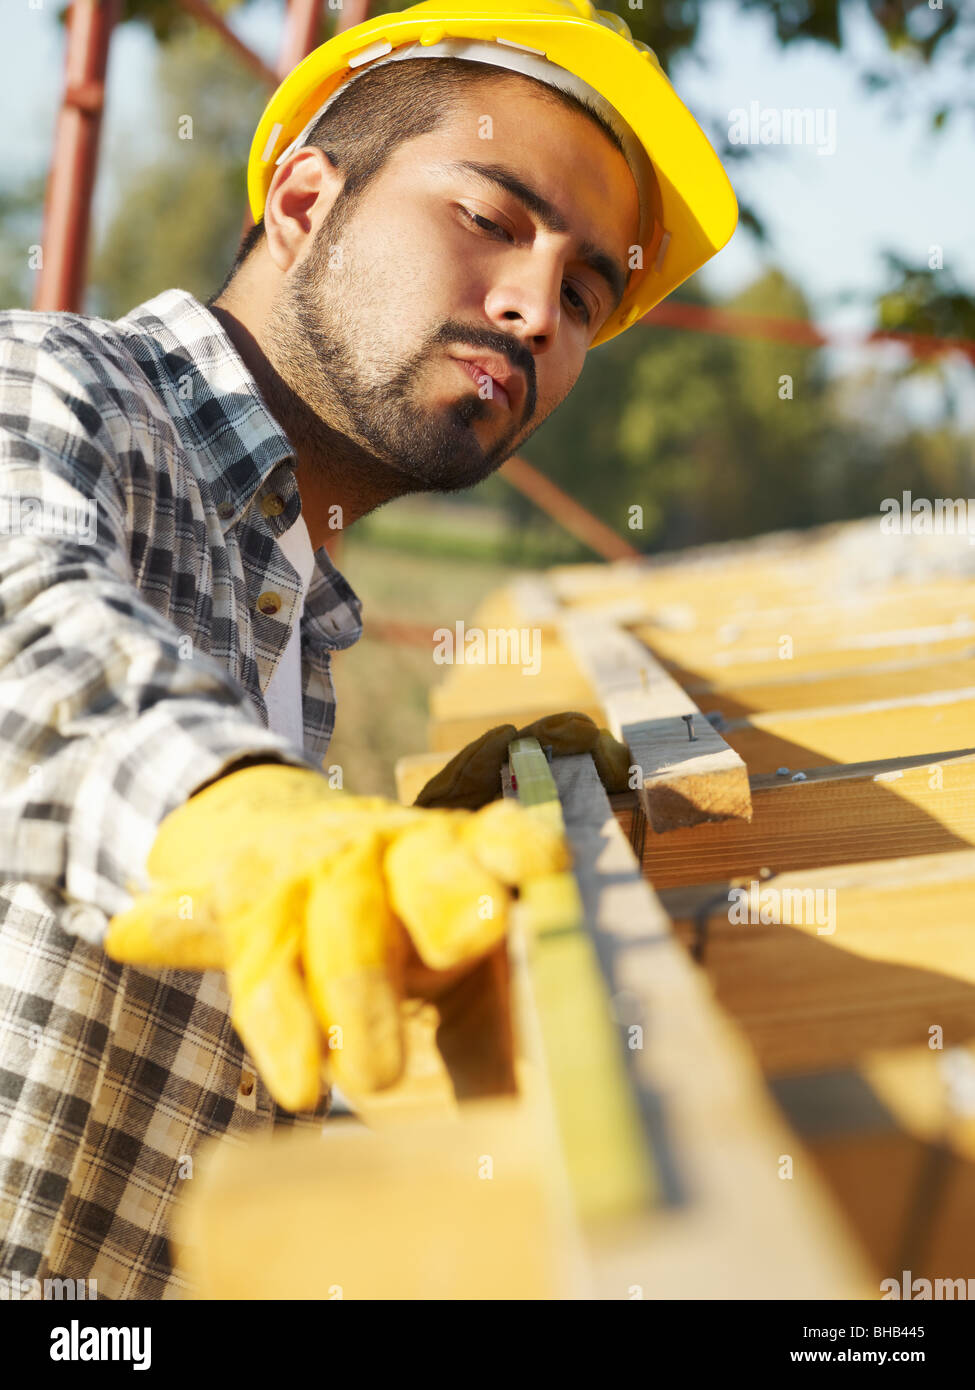 latin american construction worker on house roof with measuring tape. - Stock Image